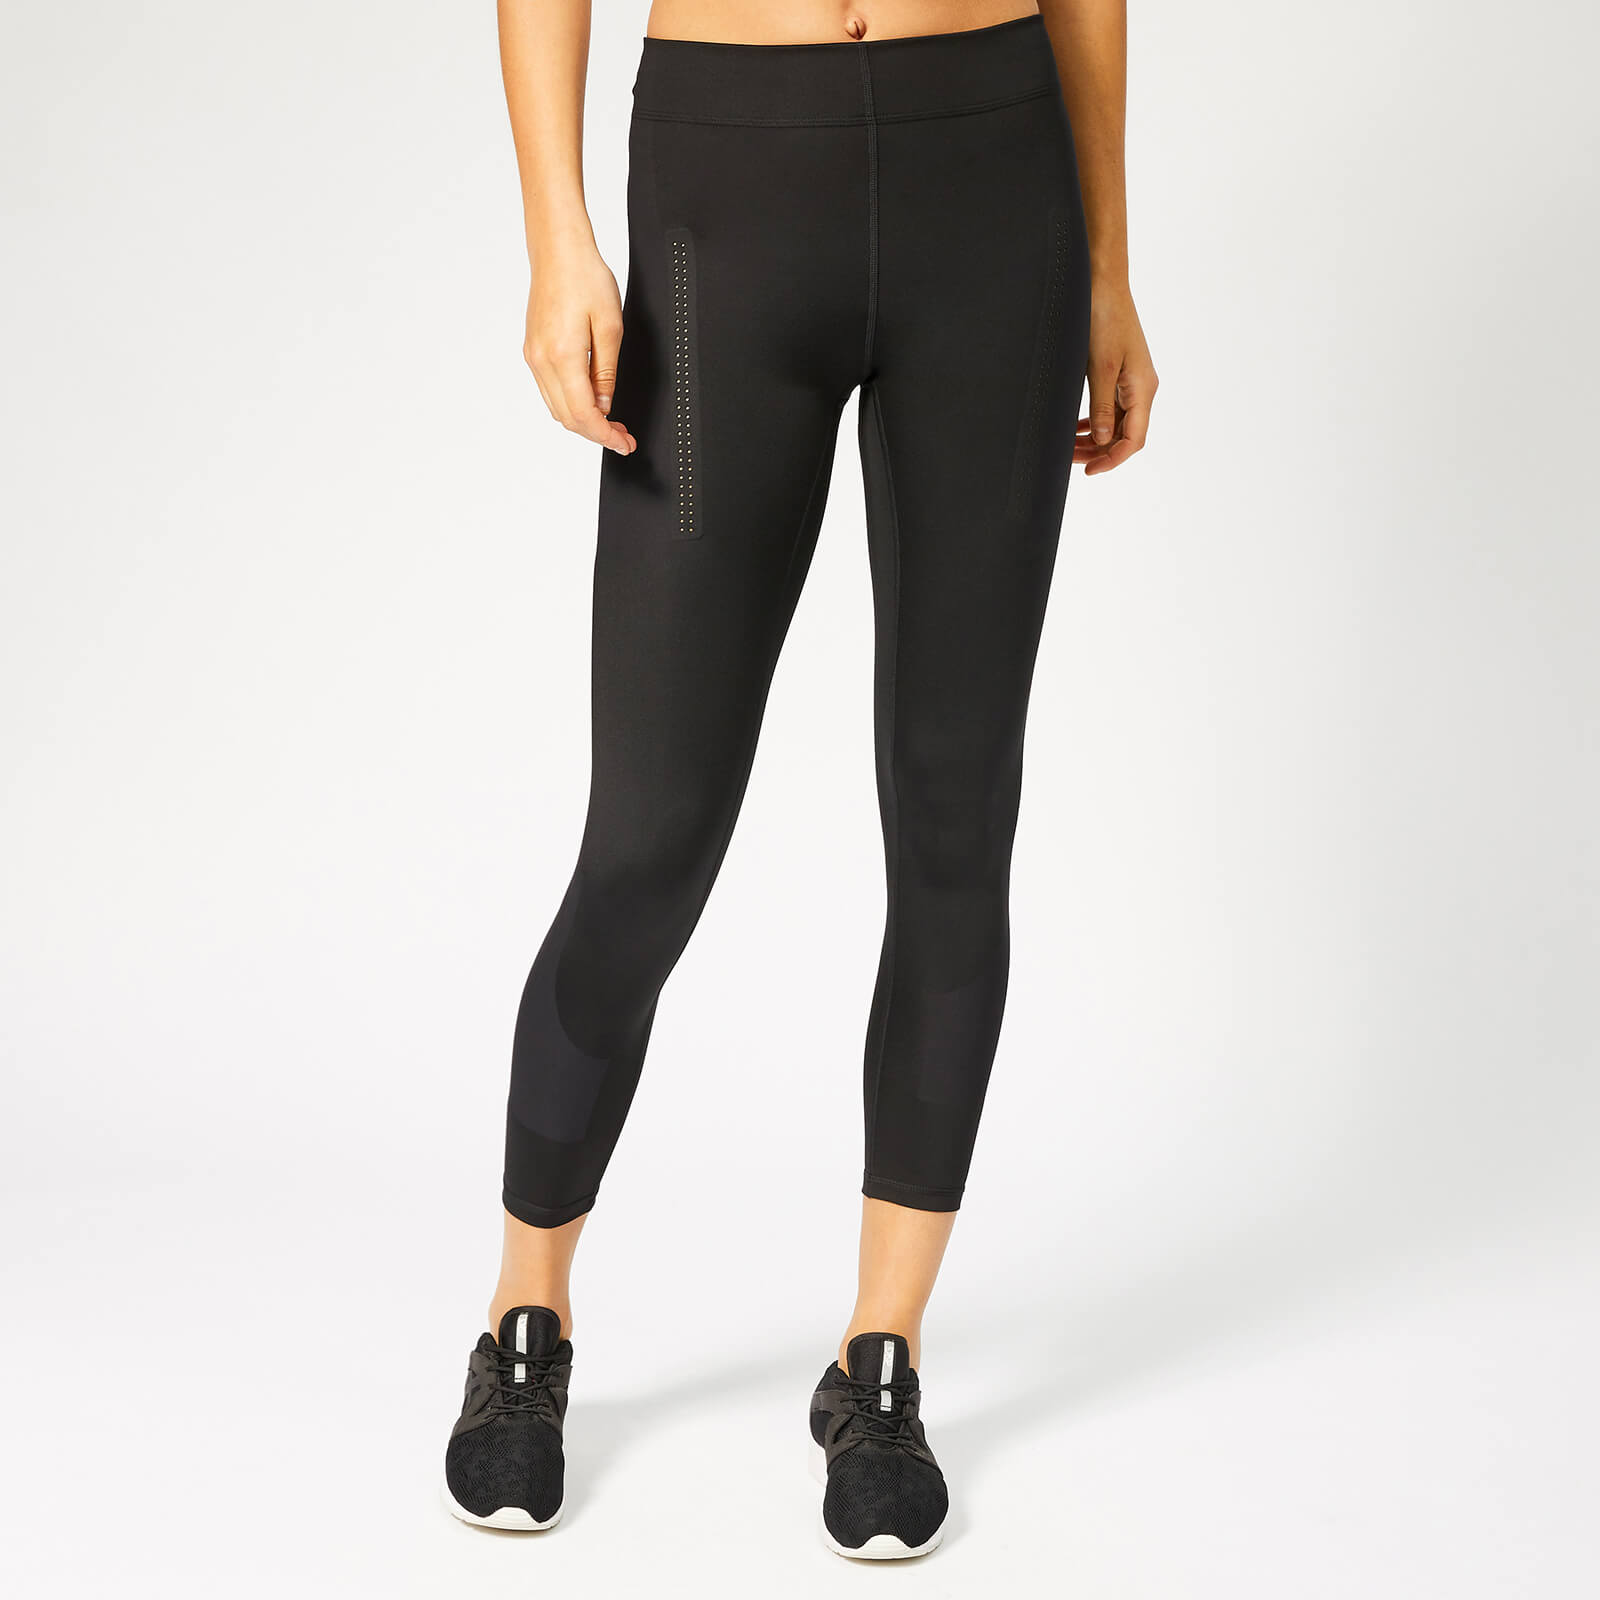 14f05a9482e2b4 adidas by Stella McCartney Women's Train Tights - Black - Free UK Delivery  over £50